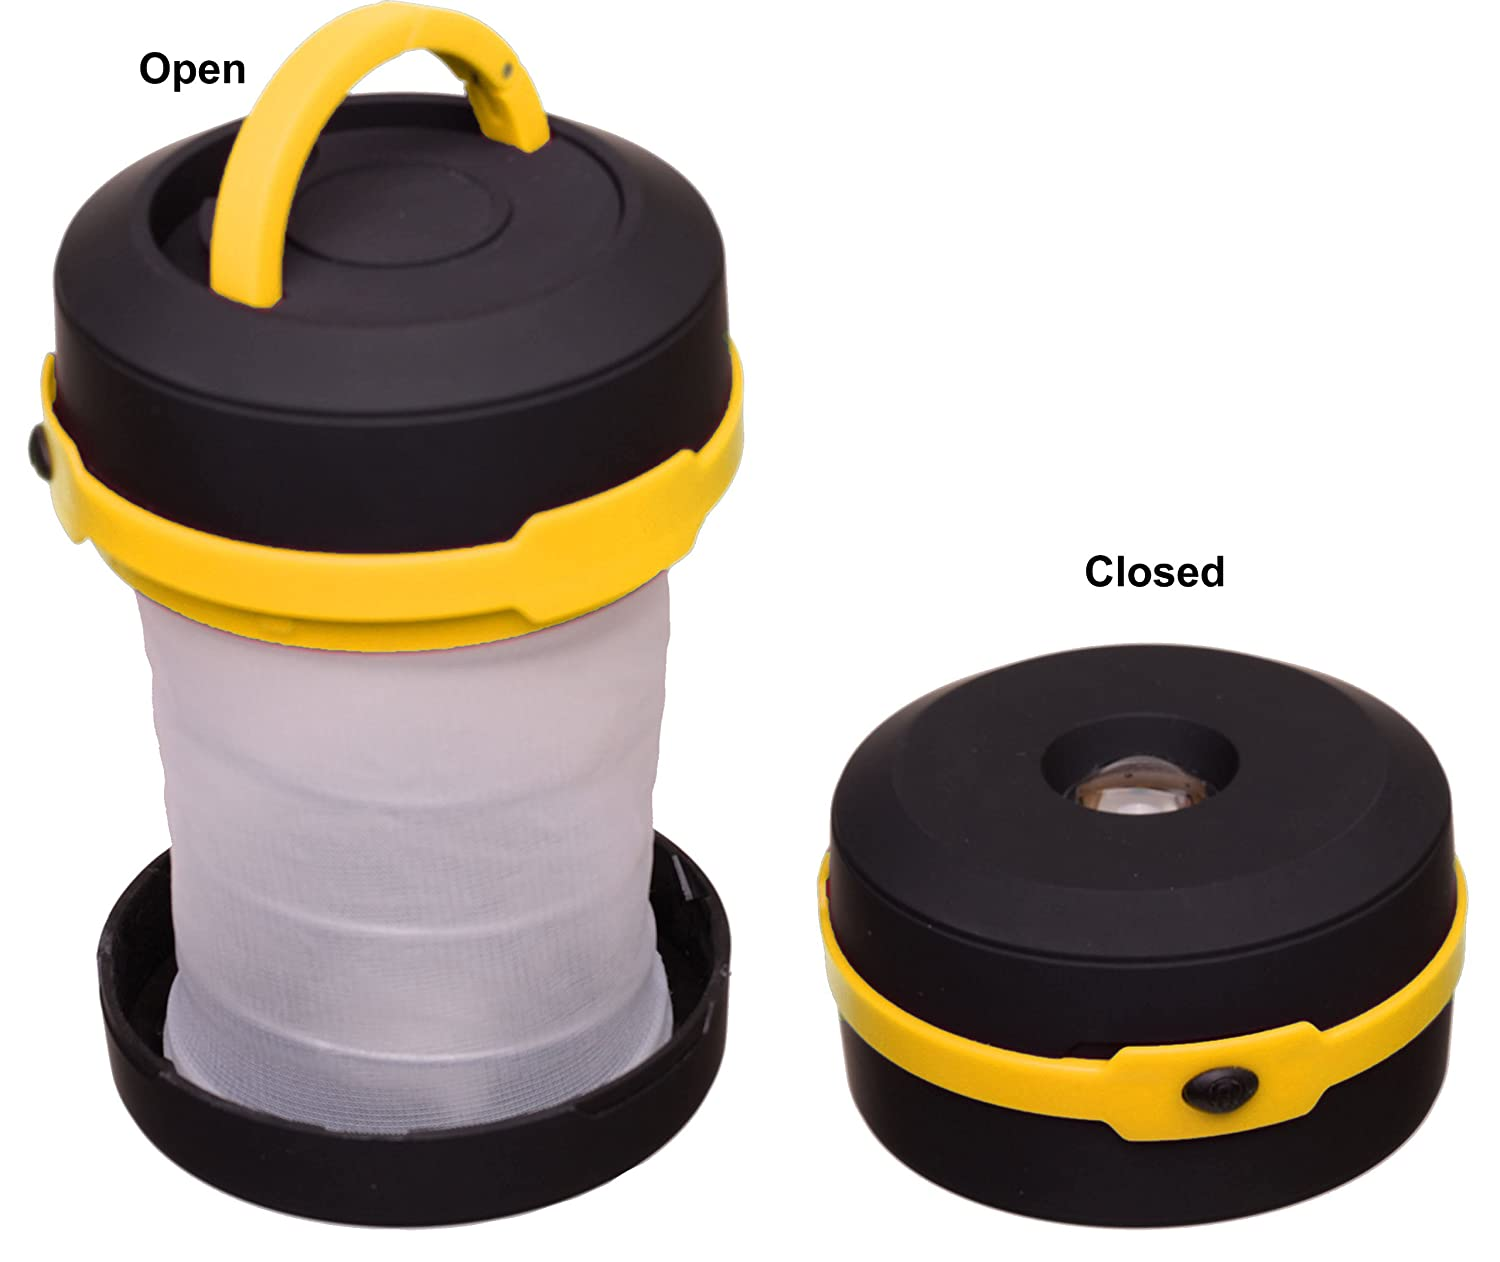 Studio Quality Products Collapsible Super Bright LED Camping Lantern.